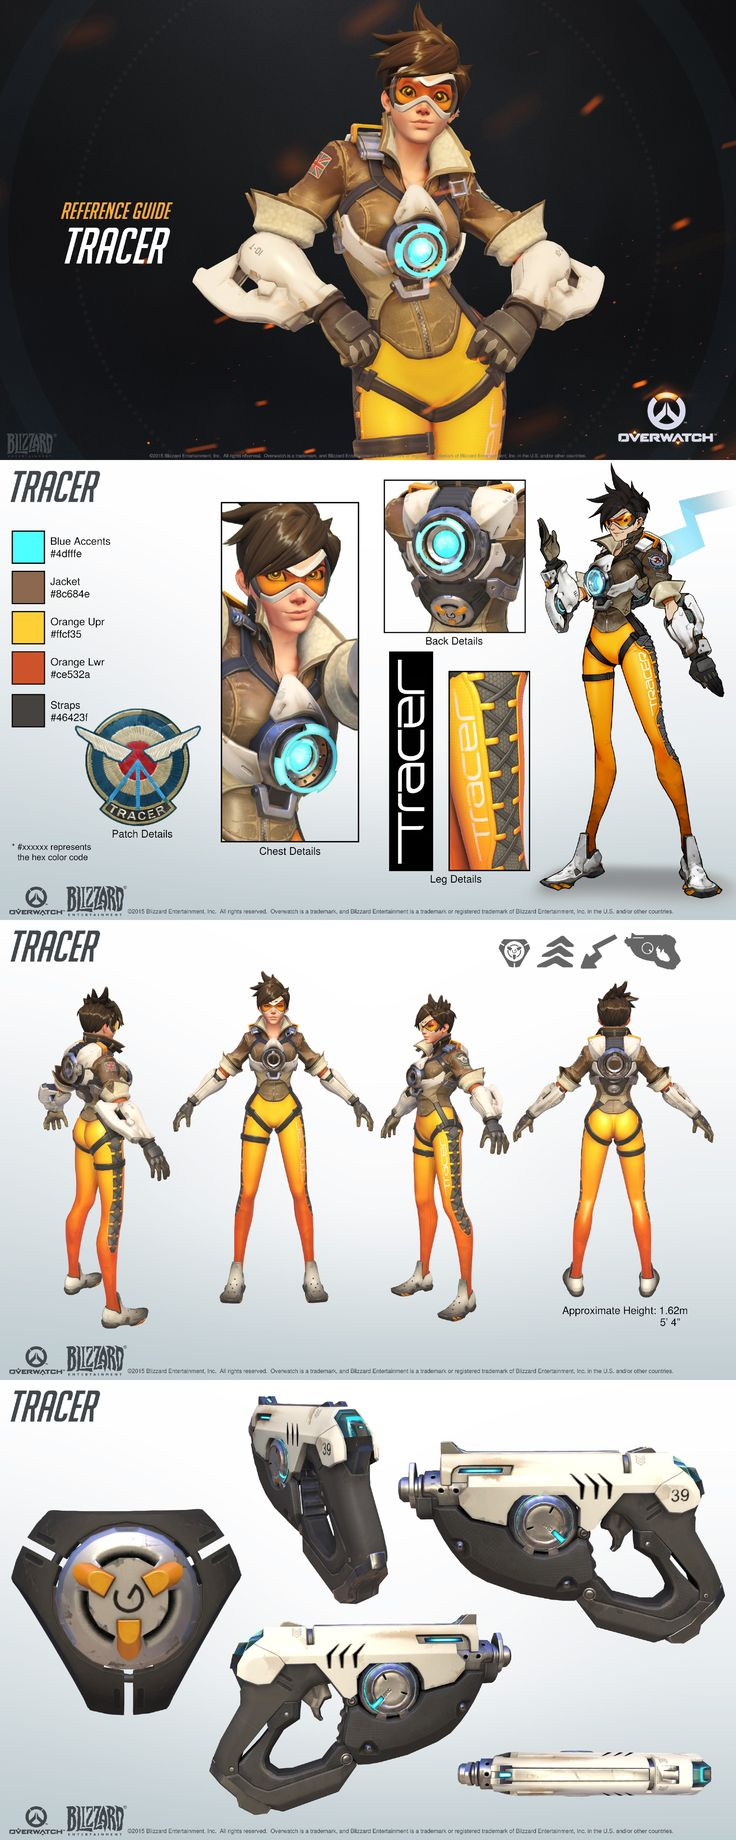 Overwatch - Tracer Reference Guide